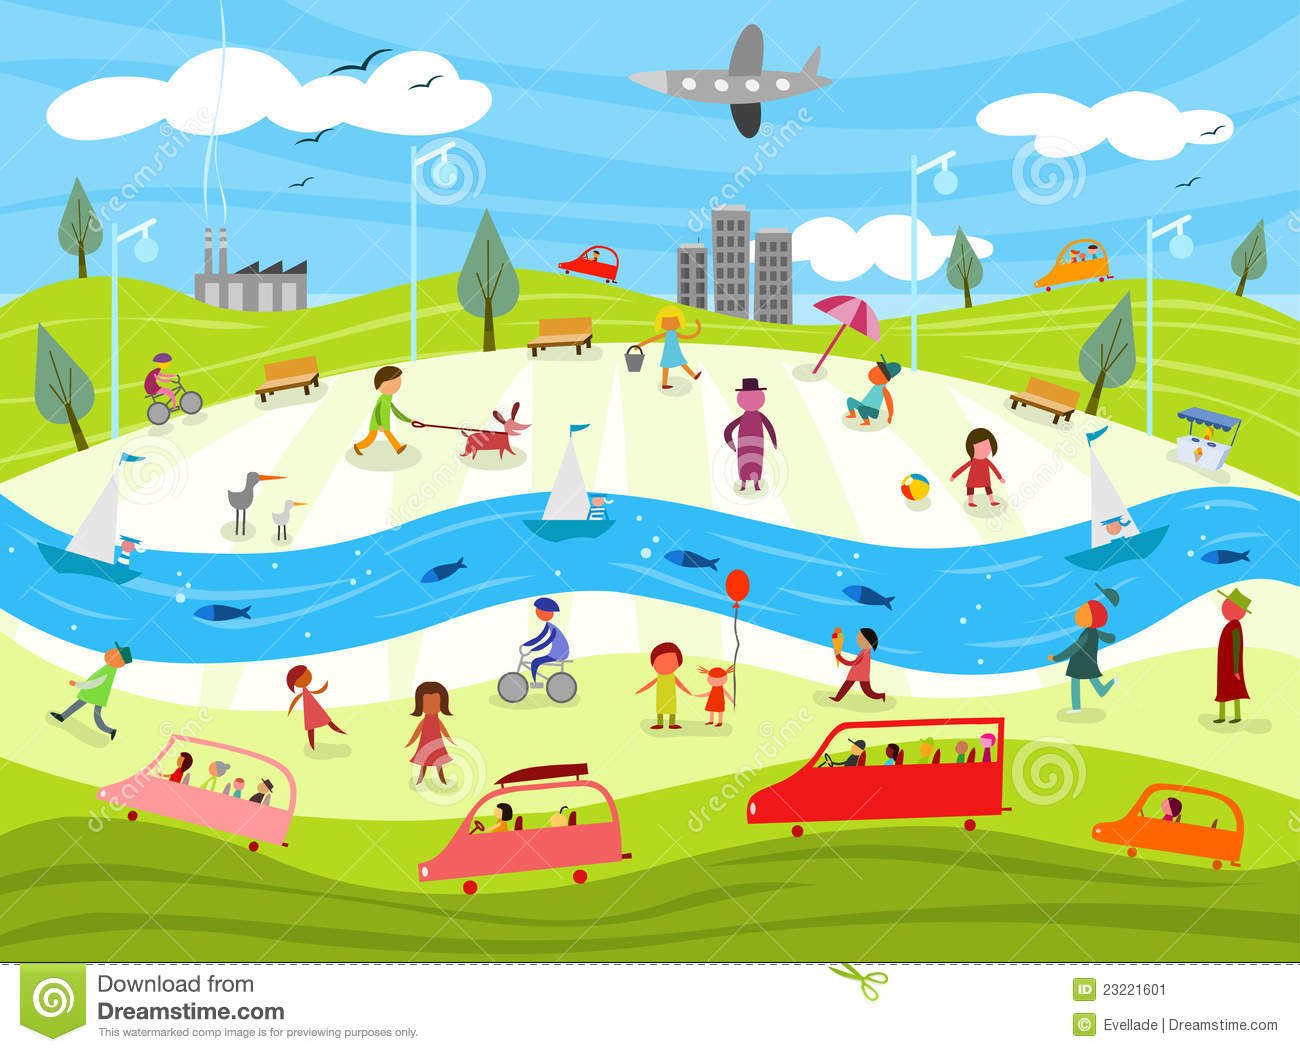 Colorful illustration of a day in a city life. Vector file available.